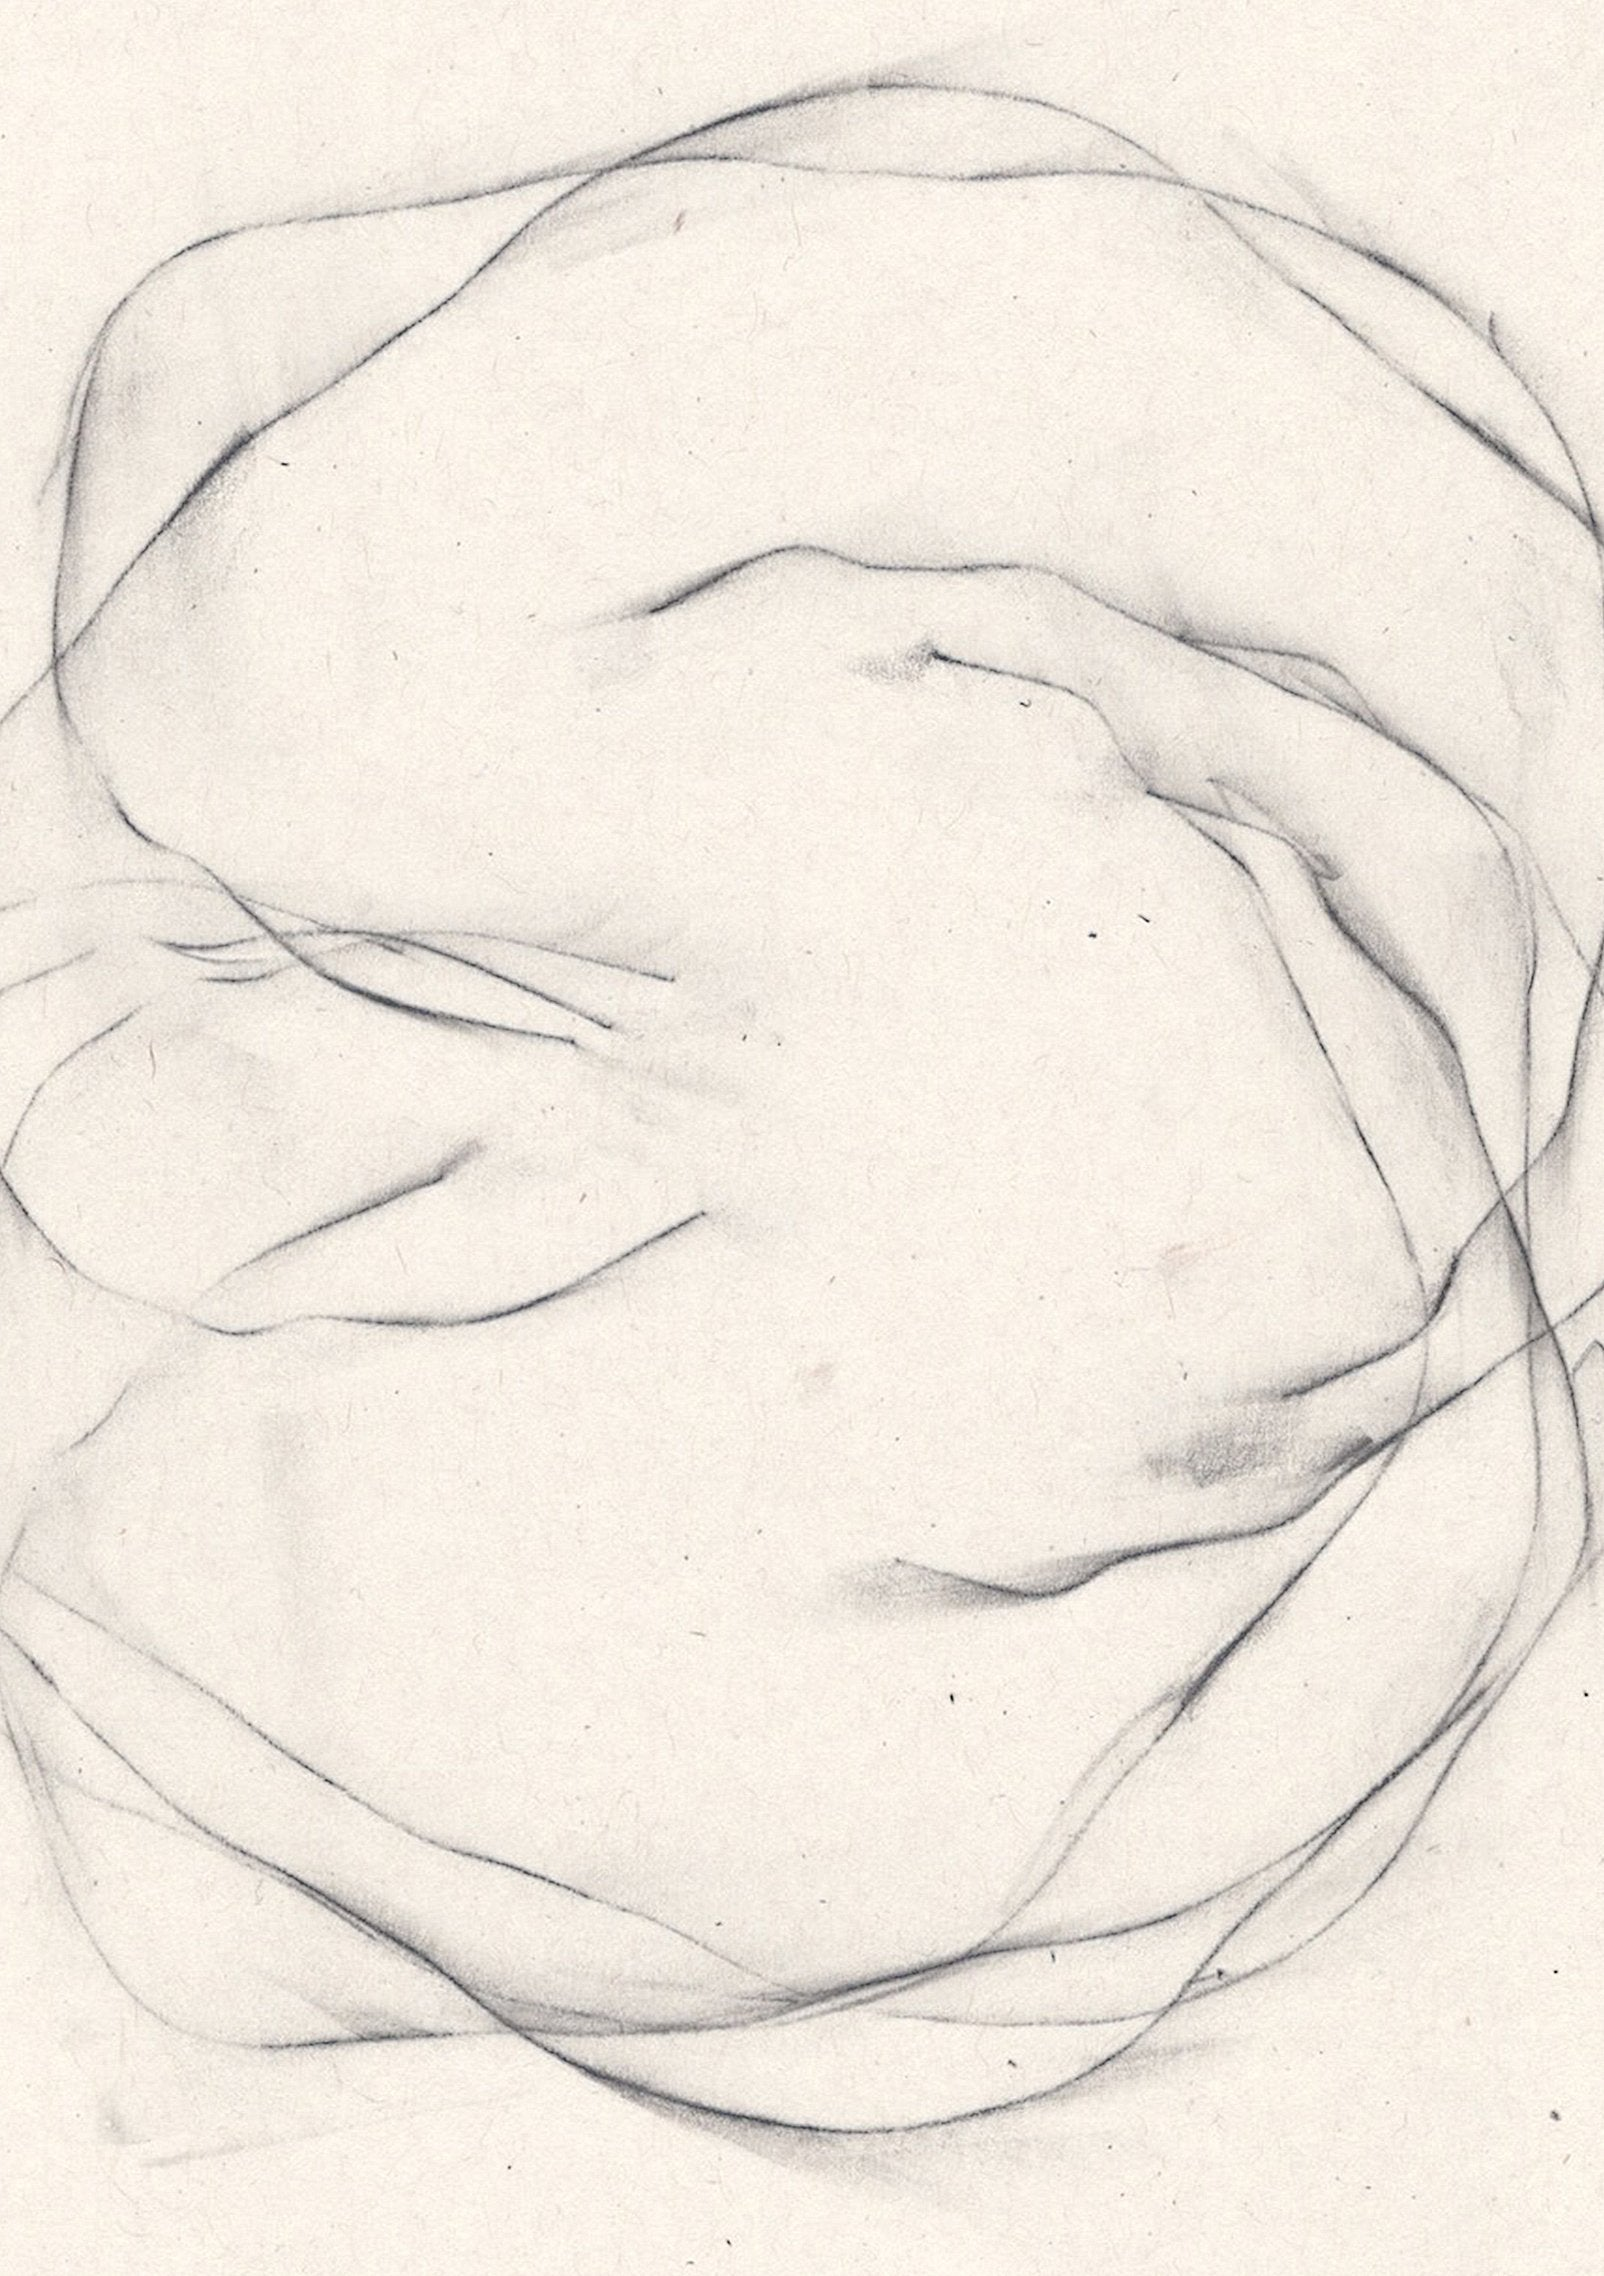 Detail of 'Unsettled II', a minimalist drawing by contemporary, woman artist, Kayleigh Harris